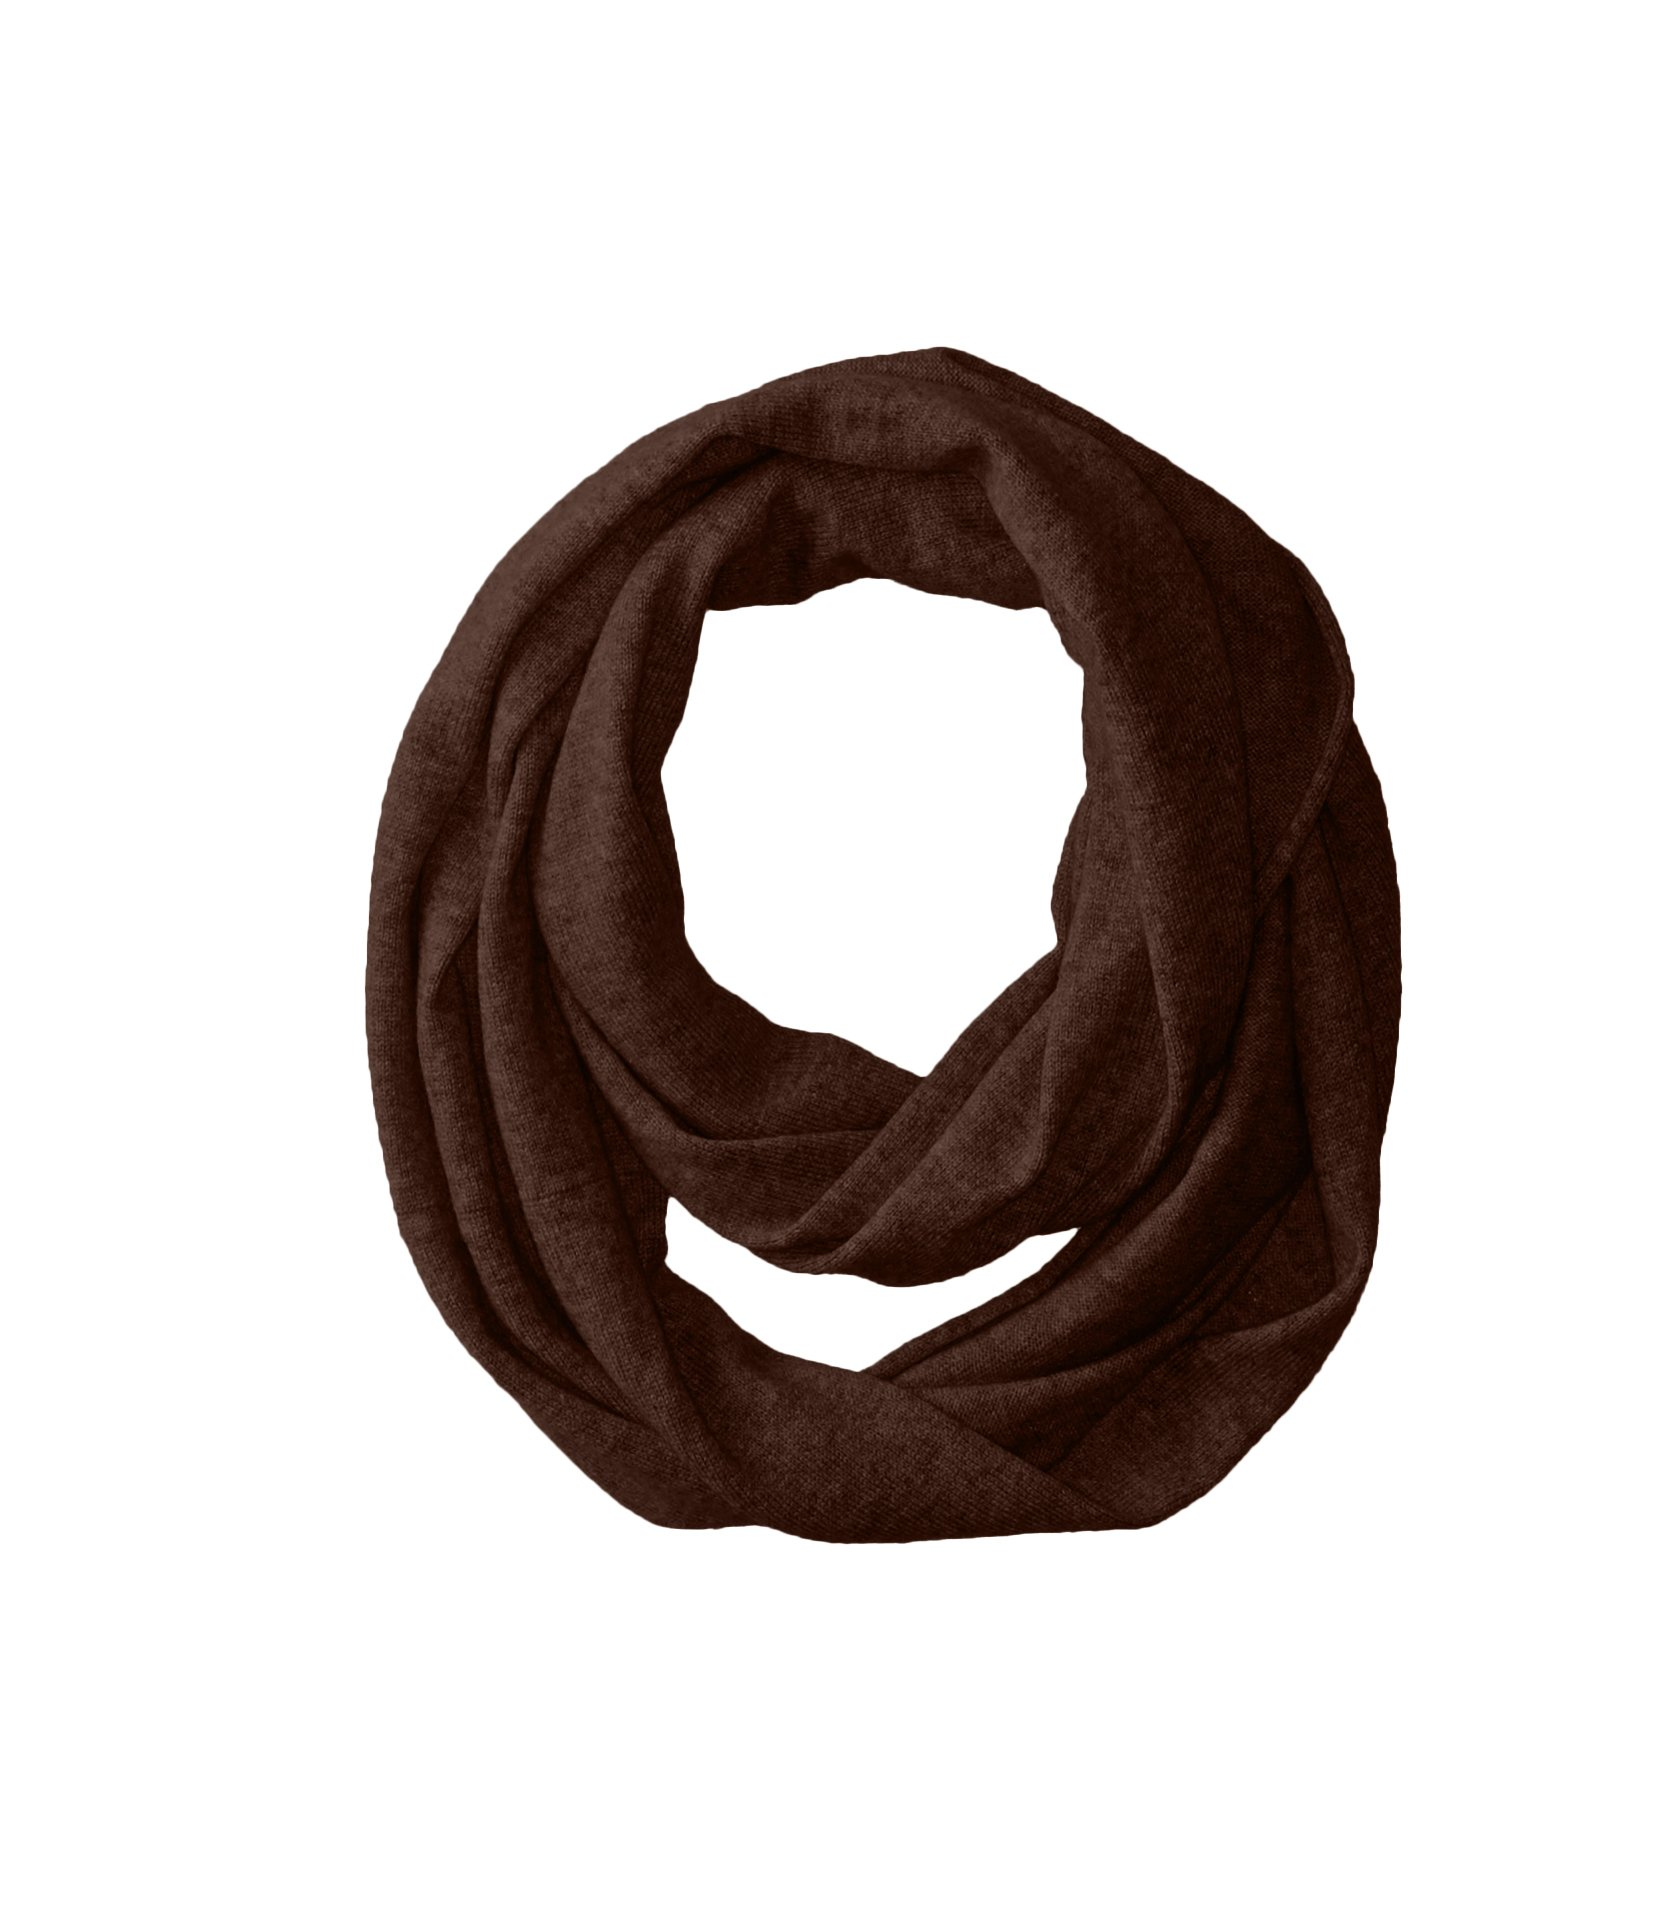 bela.nyc Women's Cashmere Solid Infinity Scarf, Chocolate Heather, One Size